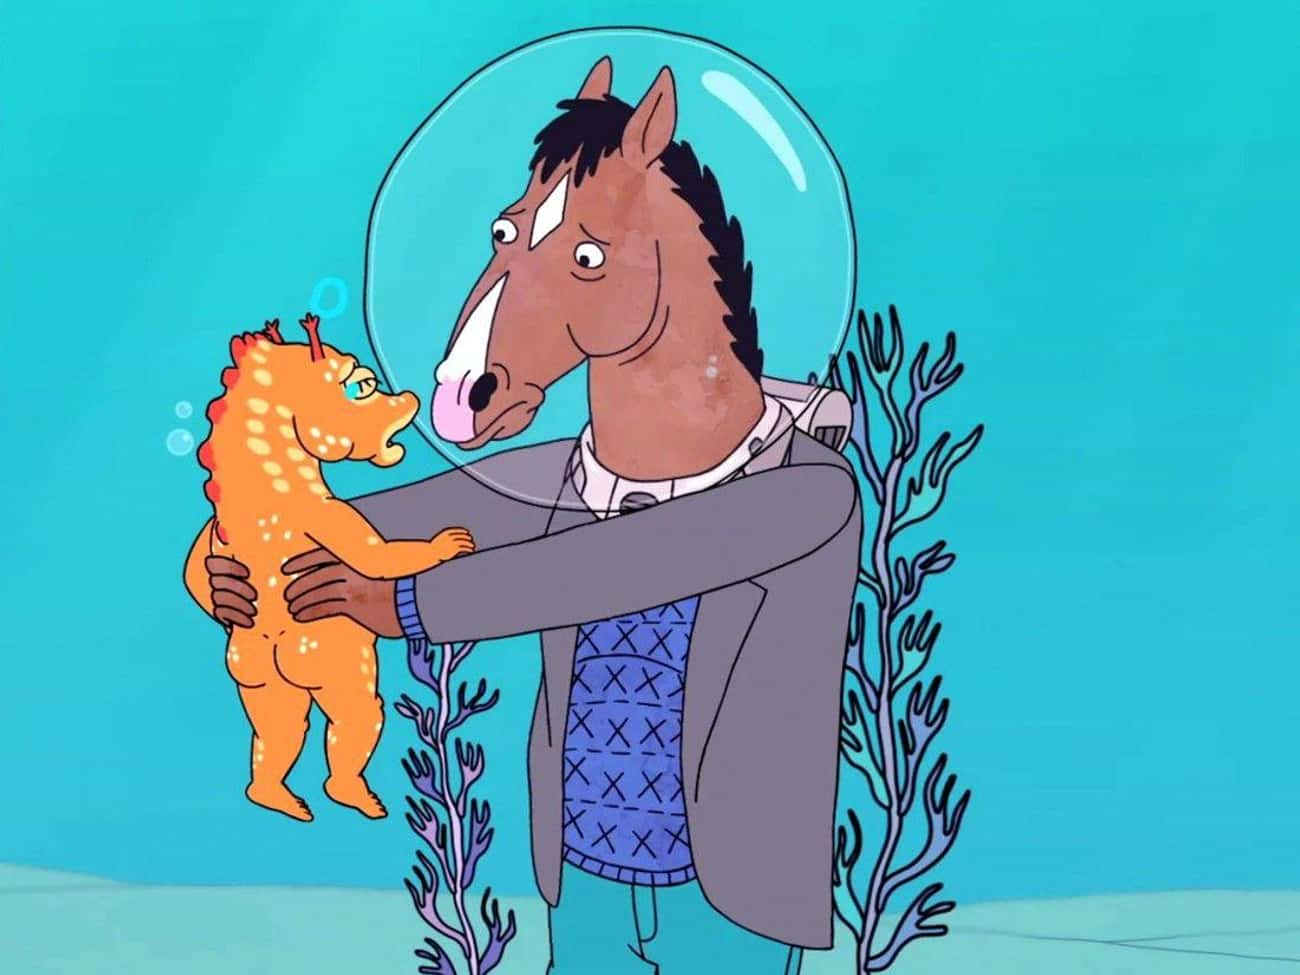 BoJack Horseman is listed (or ranked) 2 on the list The Best Adult Animated Shows On Netflix